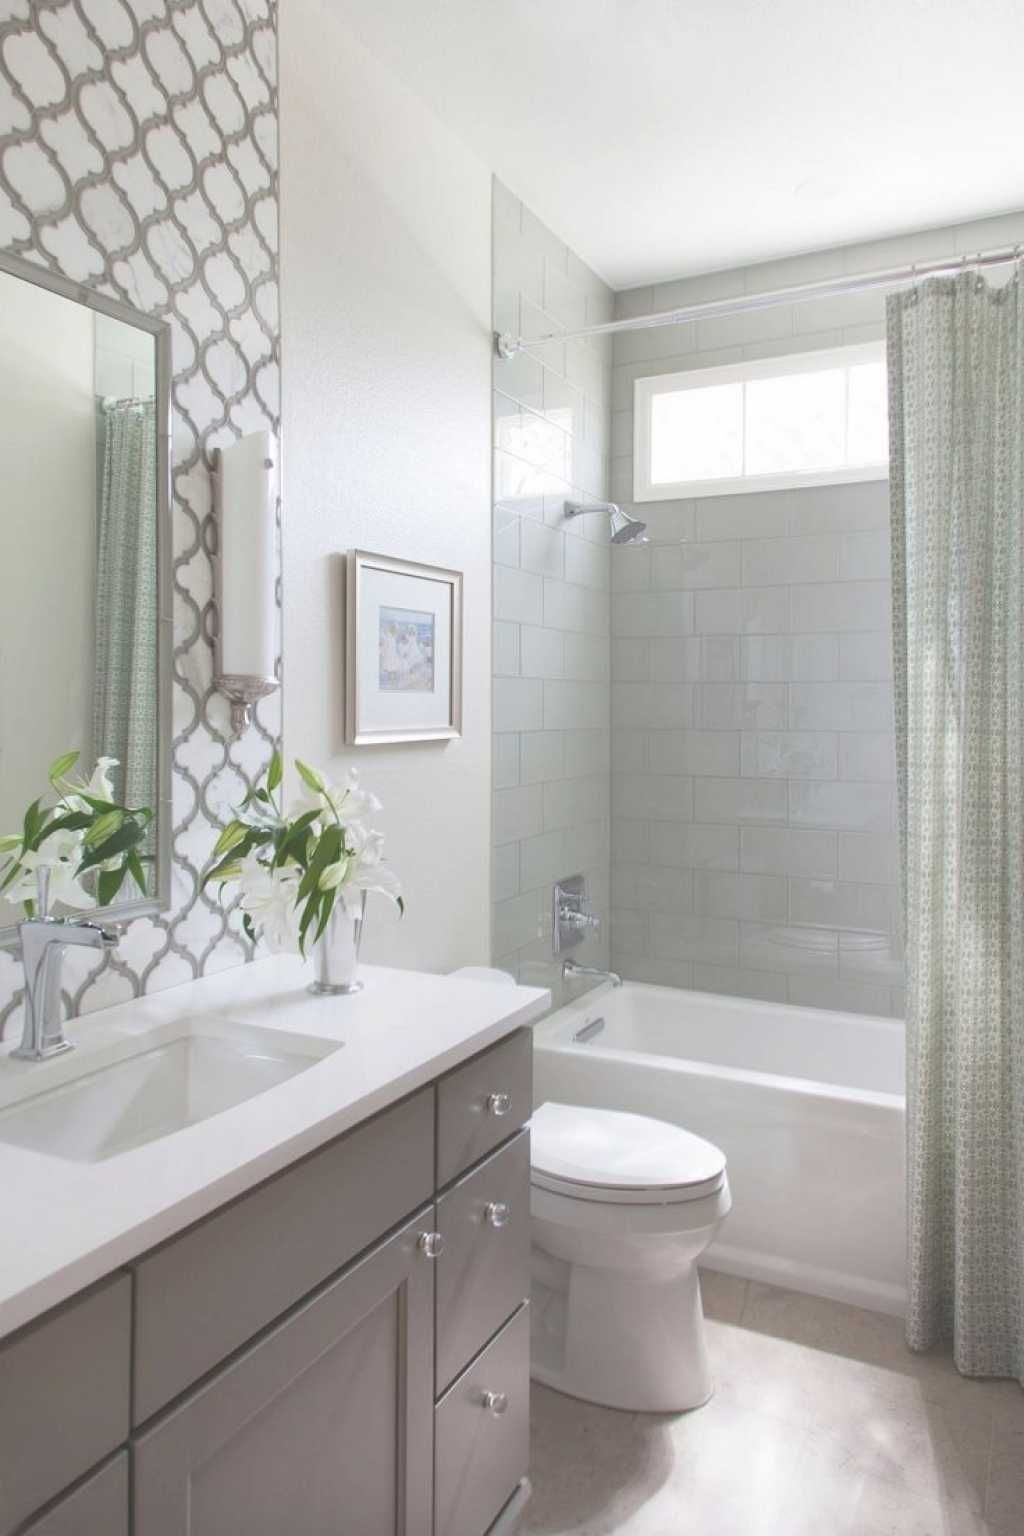 Small Bathroom Tub Shower Combo Remodeling Ideas Httpzoladecor - Small bathroom tub shower remodel